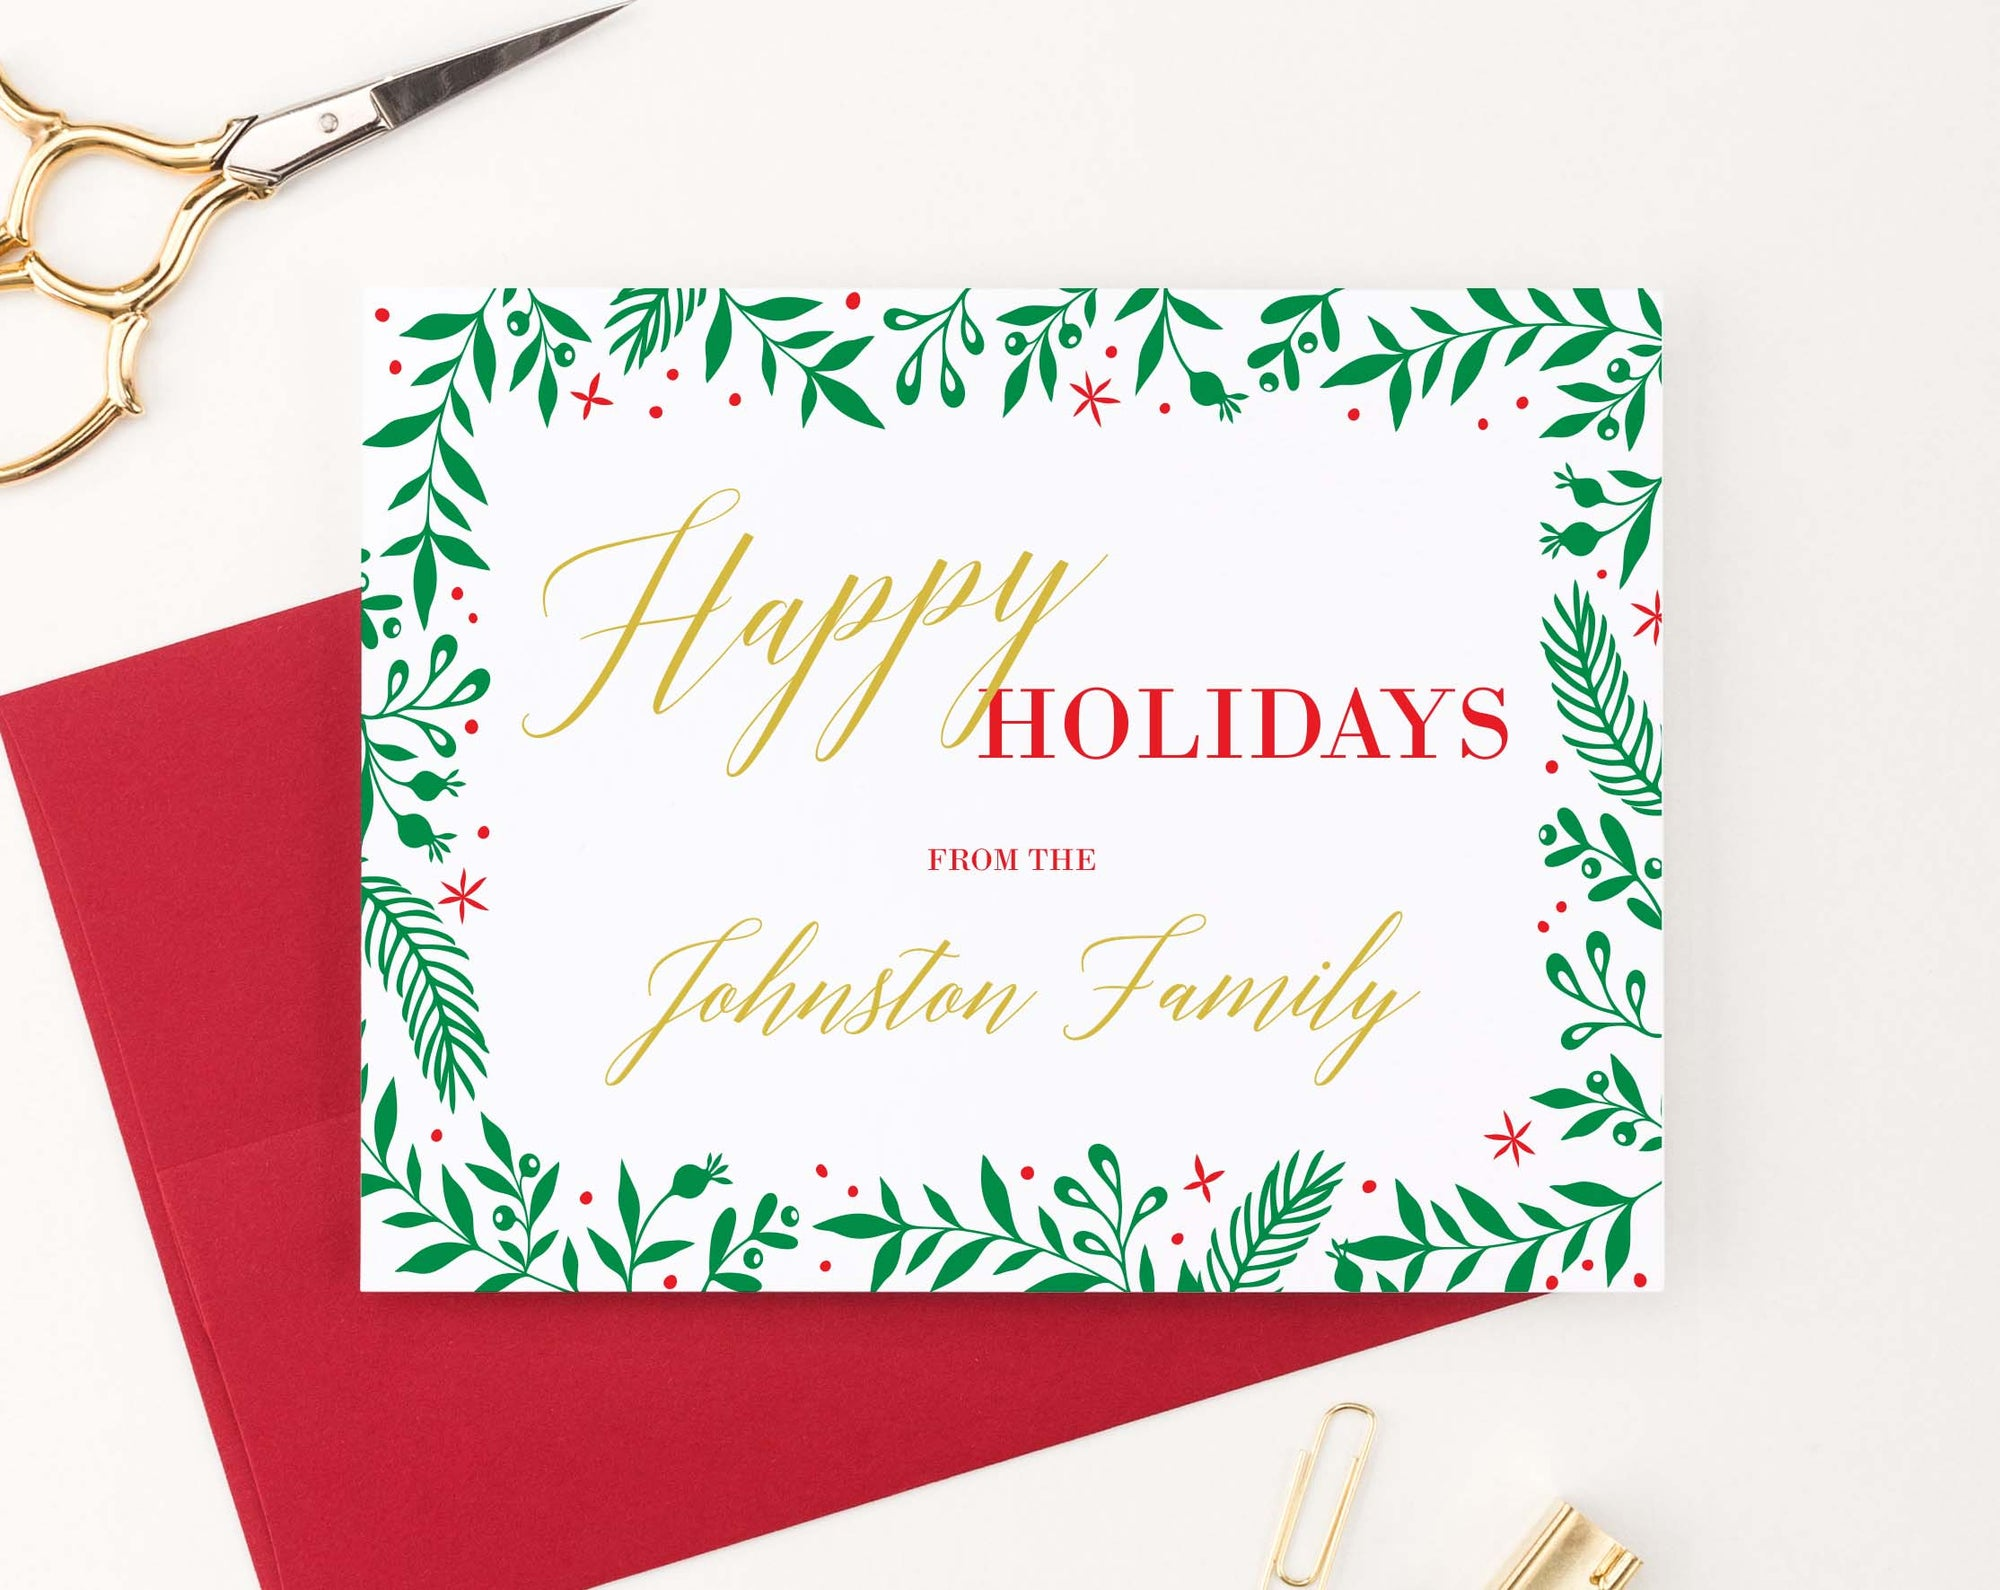 HGC005 red and gold personalizd christmas cards with holly border simple elegant